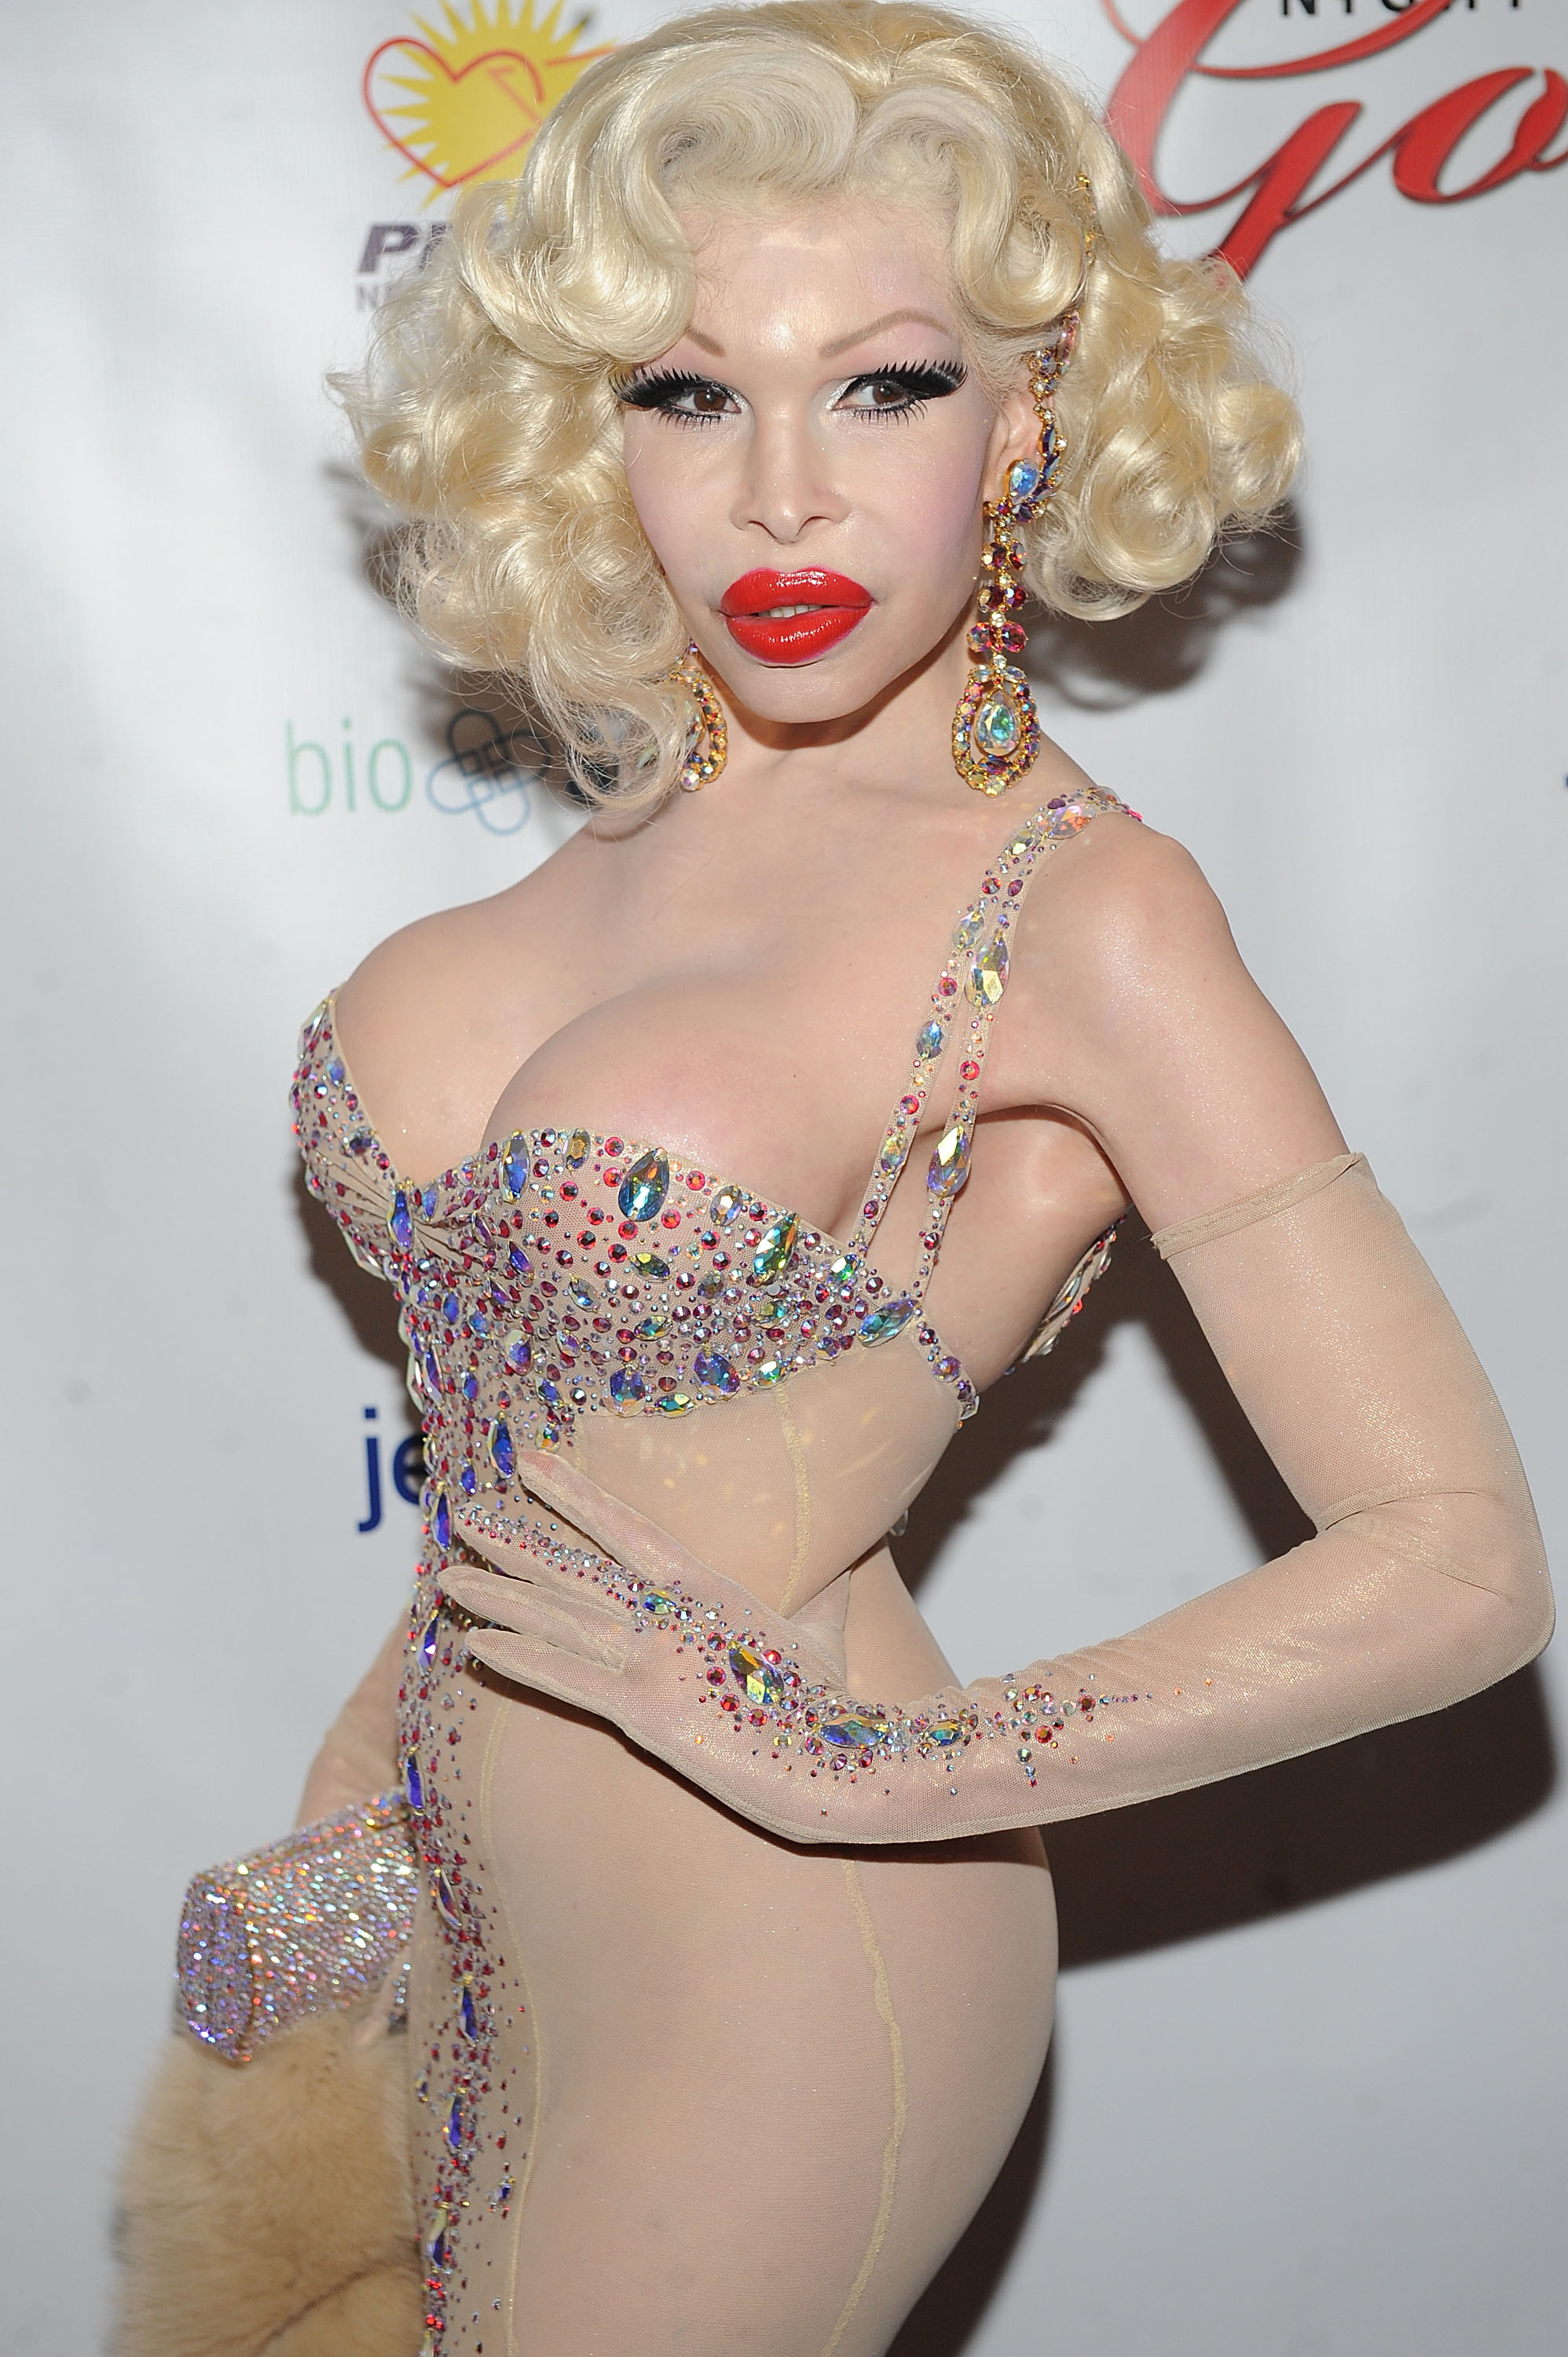 Bokissonthrone News Transgender Amanda Lepore Wears The